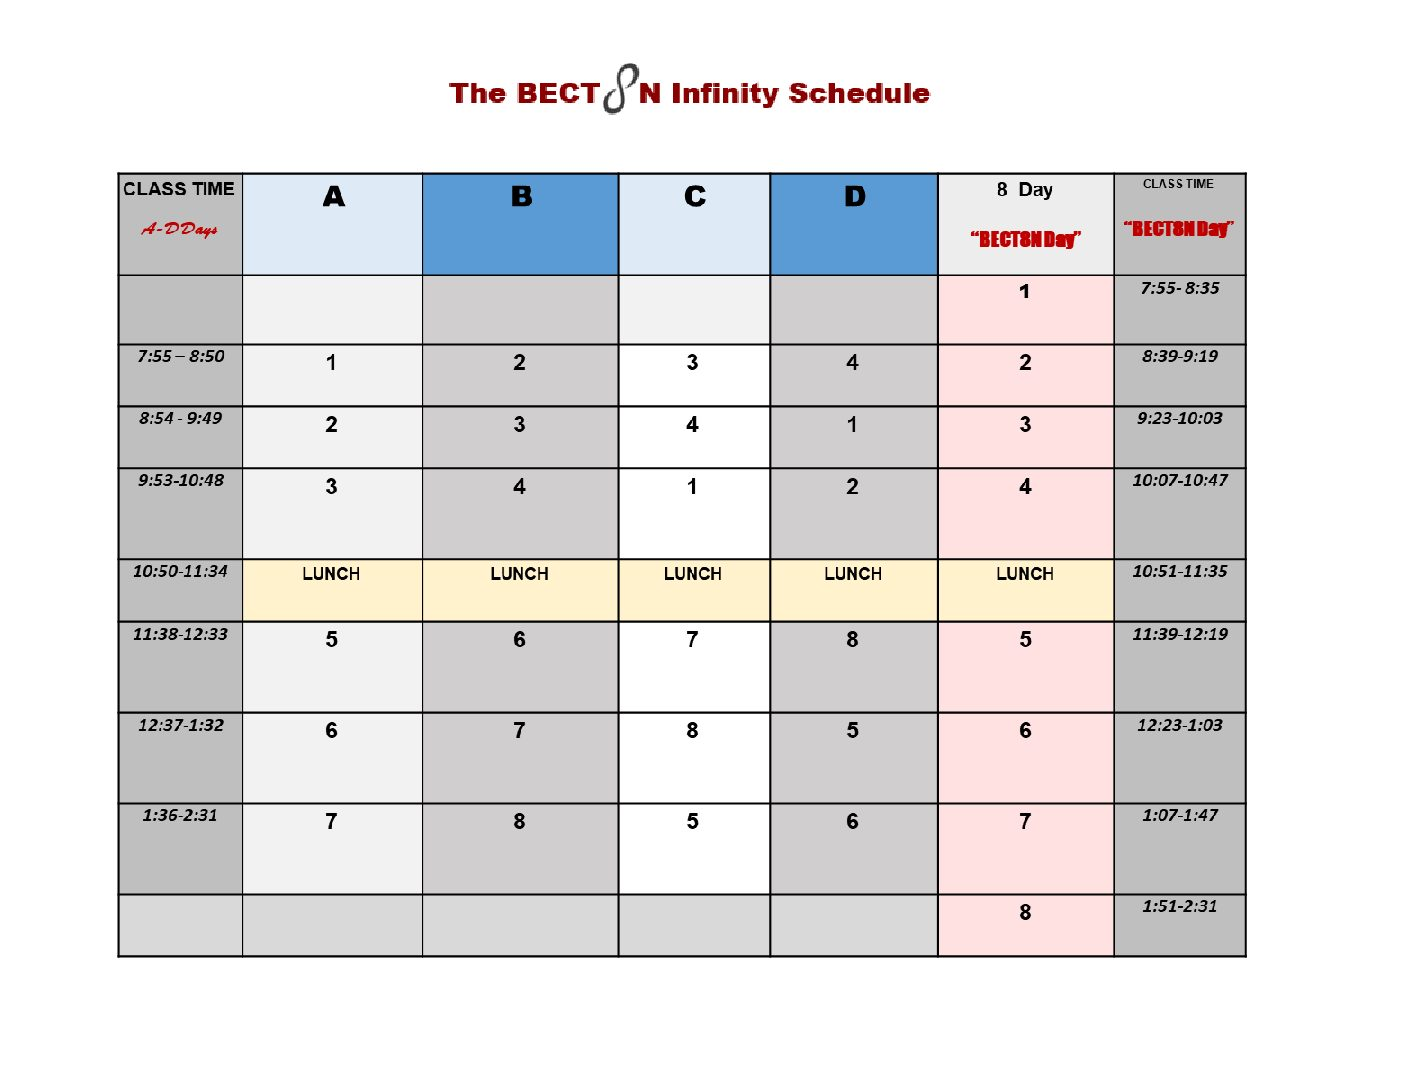 BECT8N Infinity Schedule, earlier start time to be implemented next school year